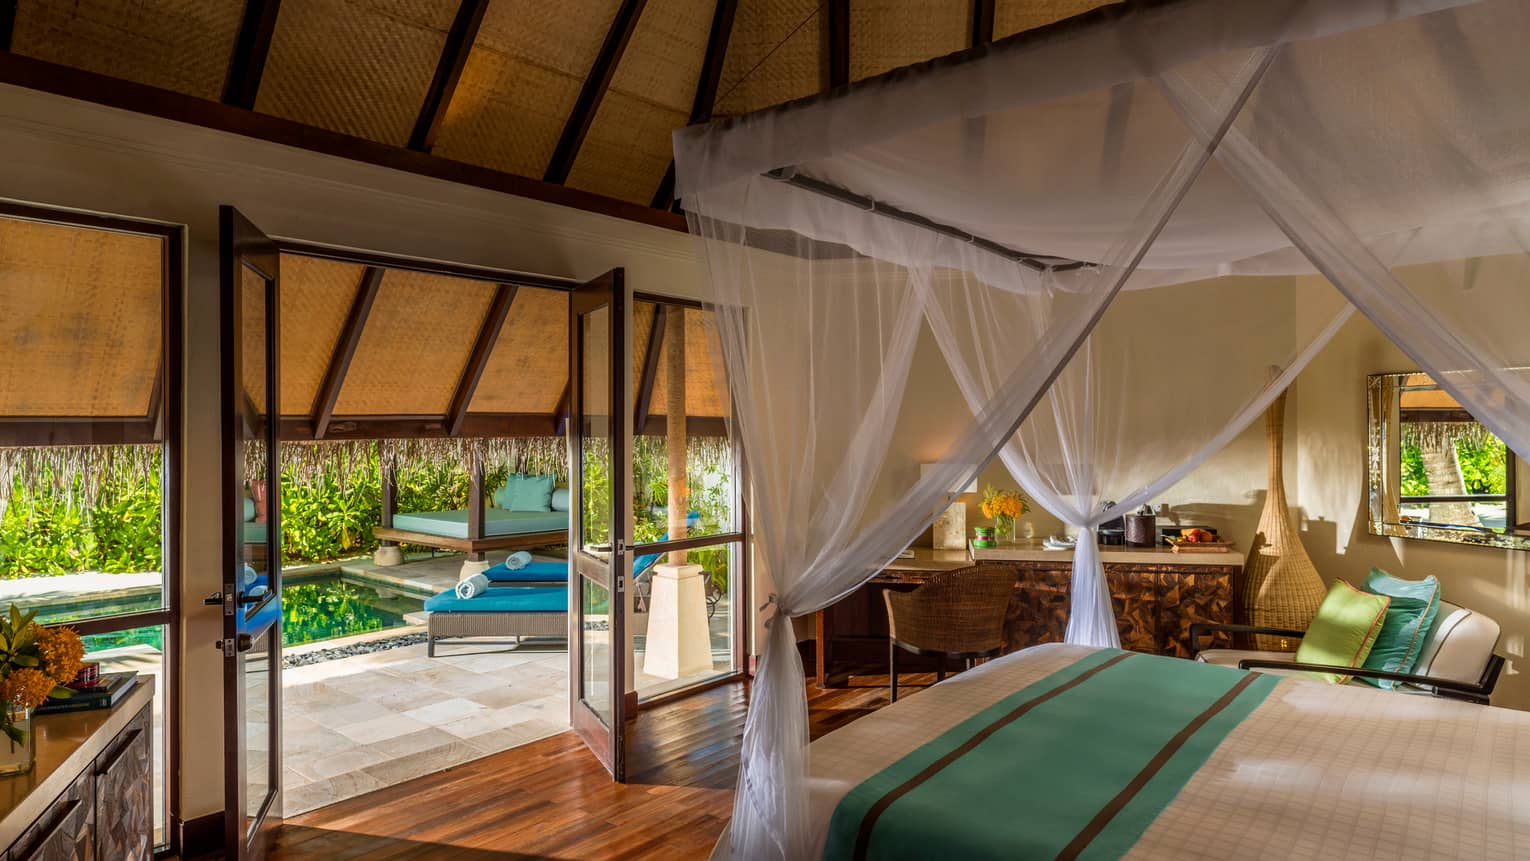 Traditional beach pavilion suite with canopy bed and open-air doors and windows leading to patio